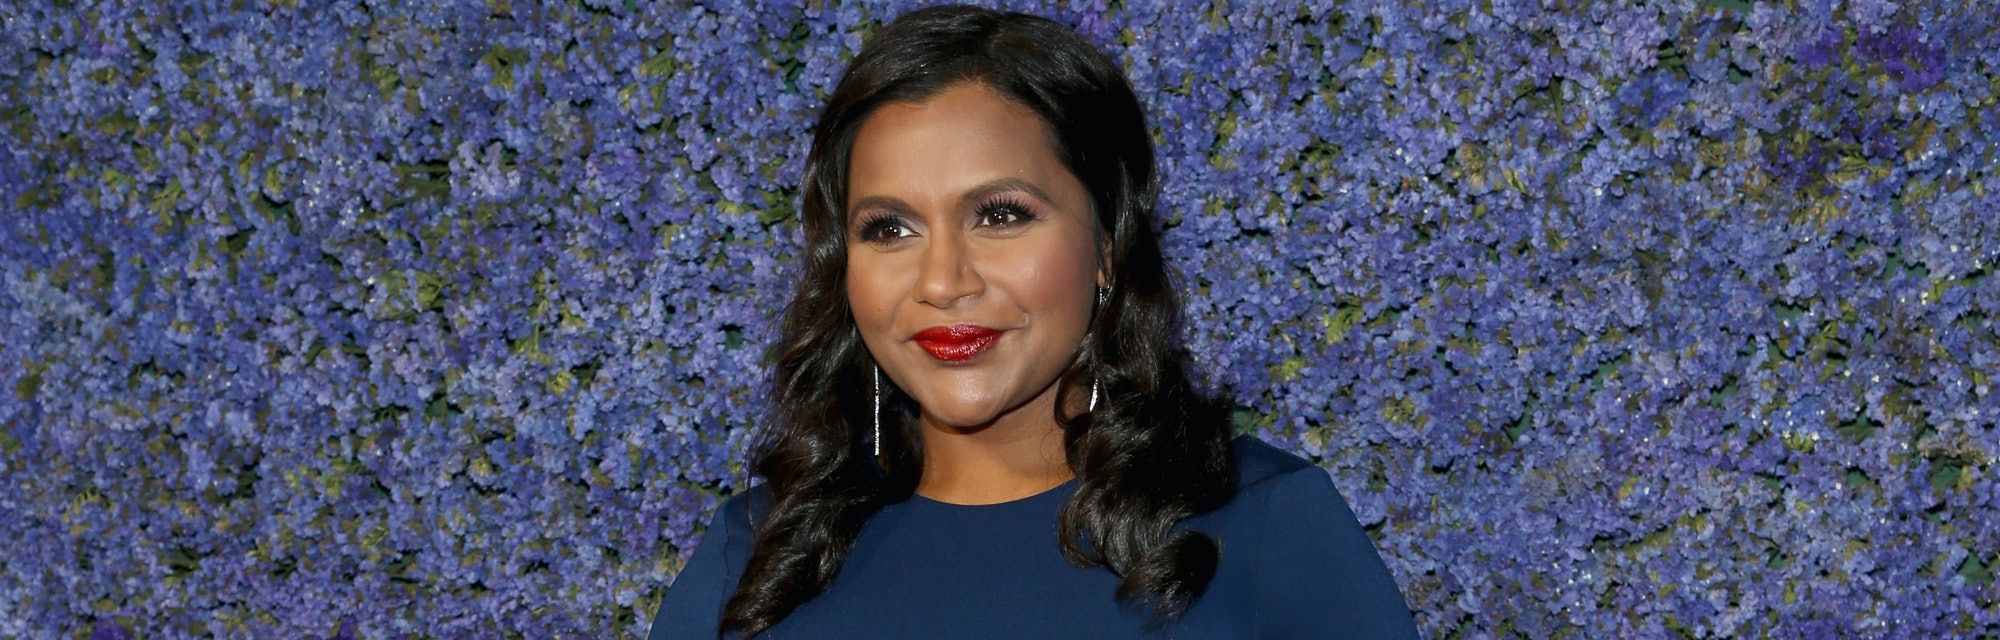 In an interview with Romper, Mindy Kaling opened up about her son Spencer's sweet personality.